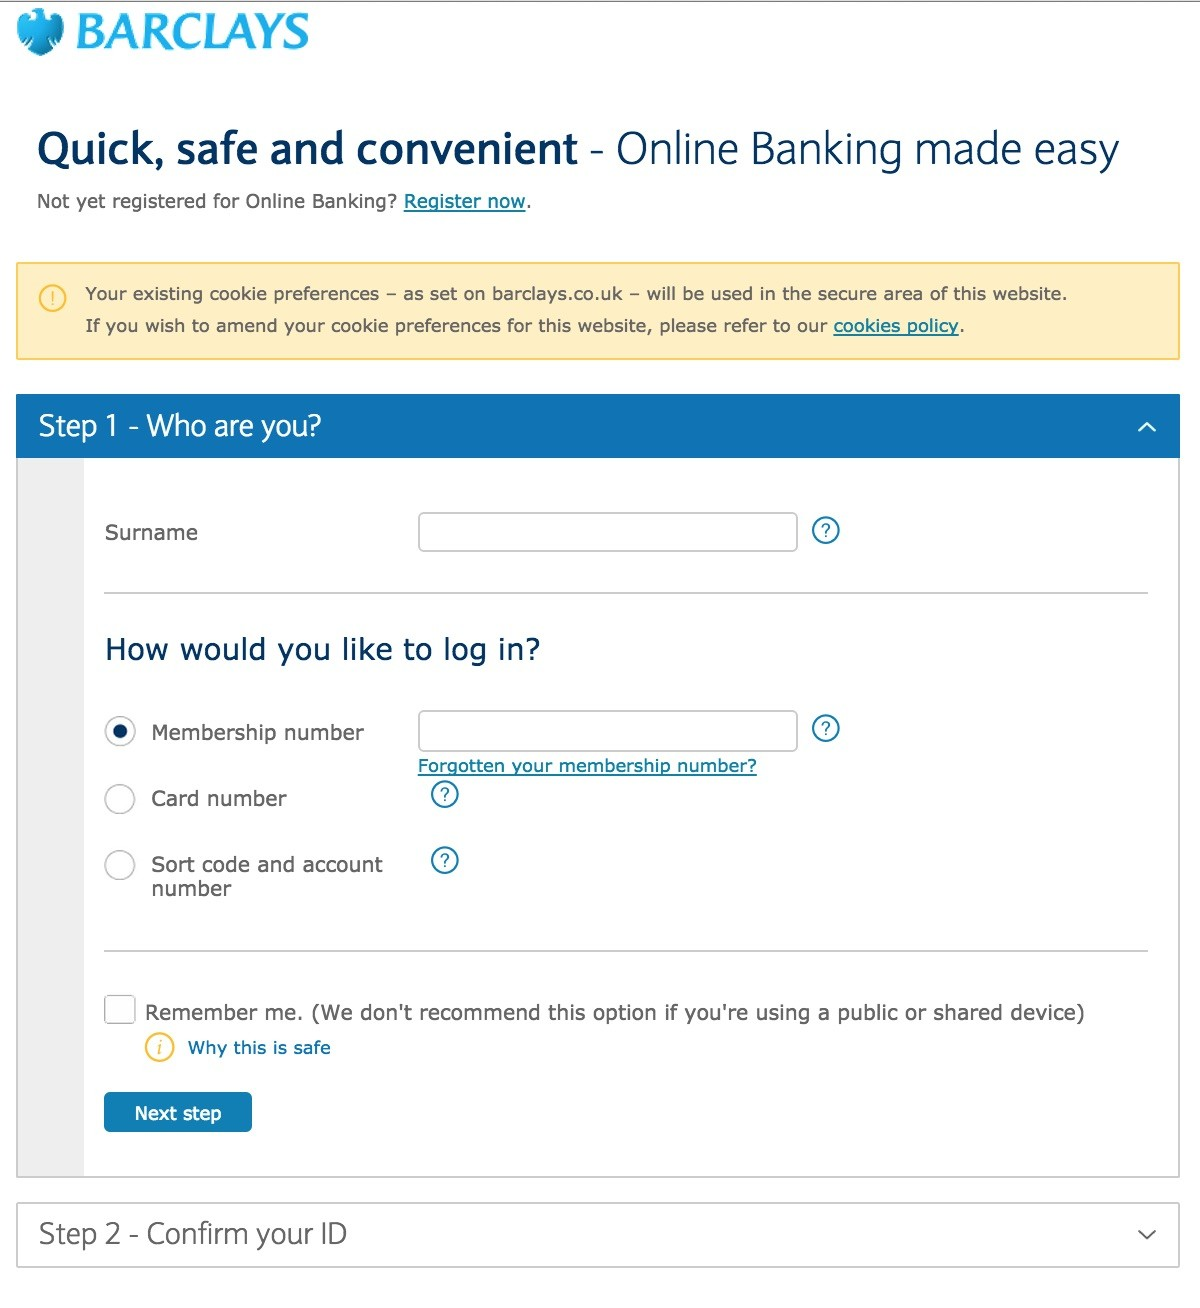 barclays online banking login page